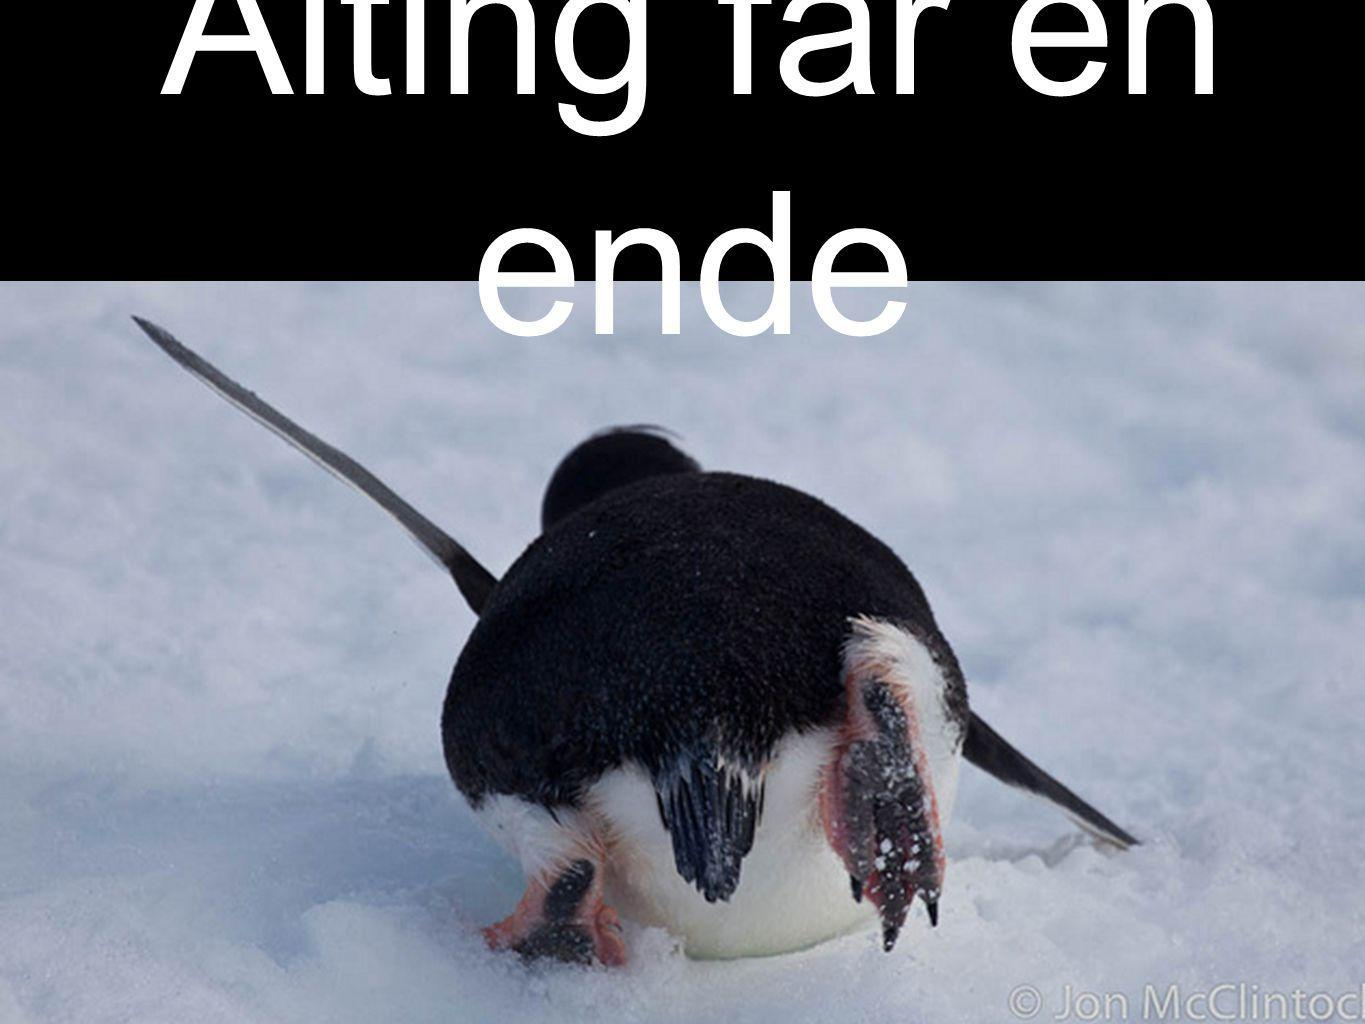 Alting får en ende